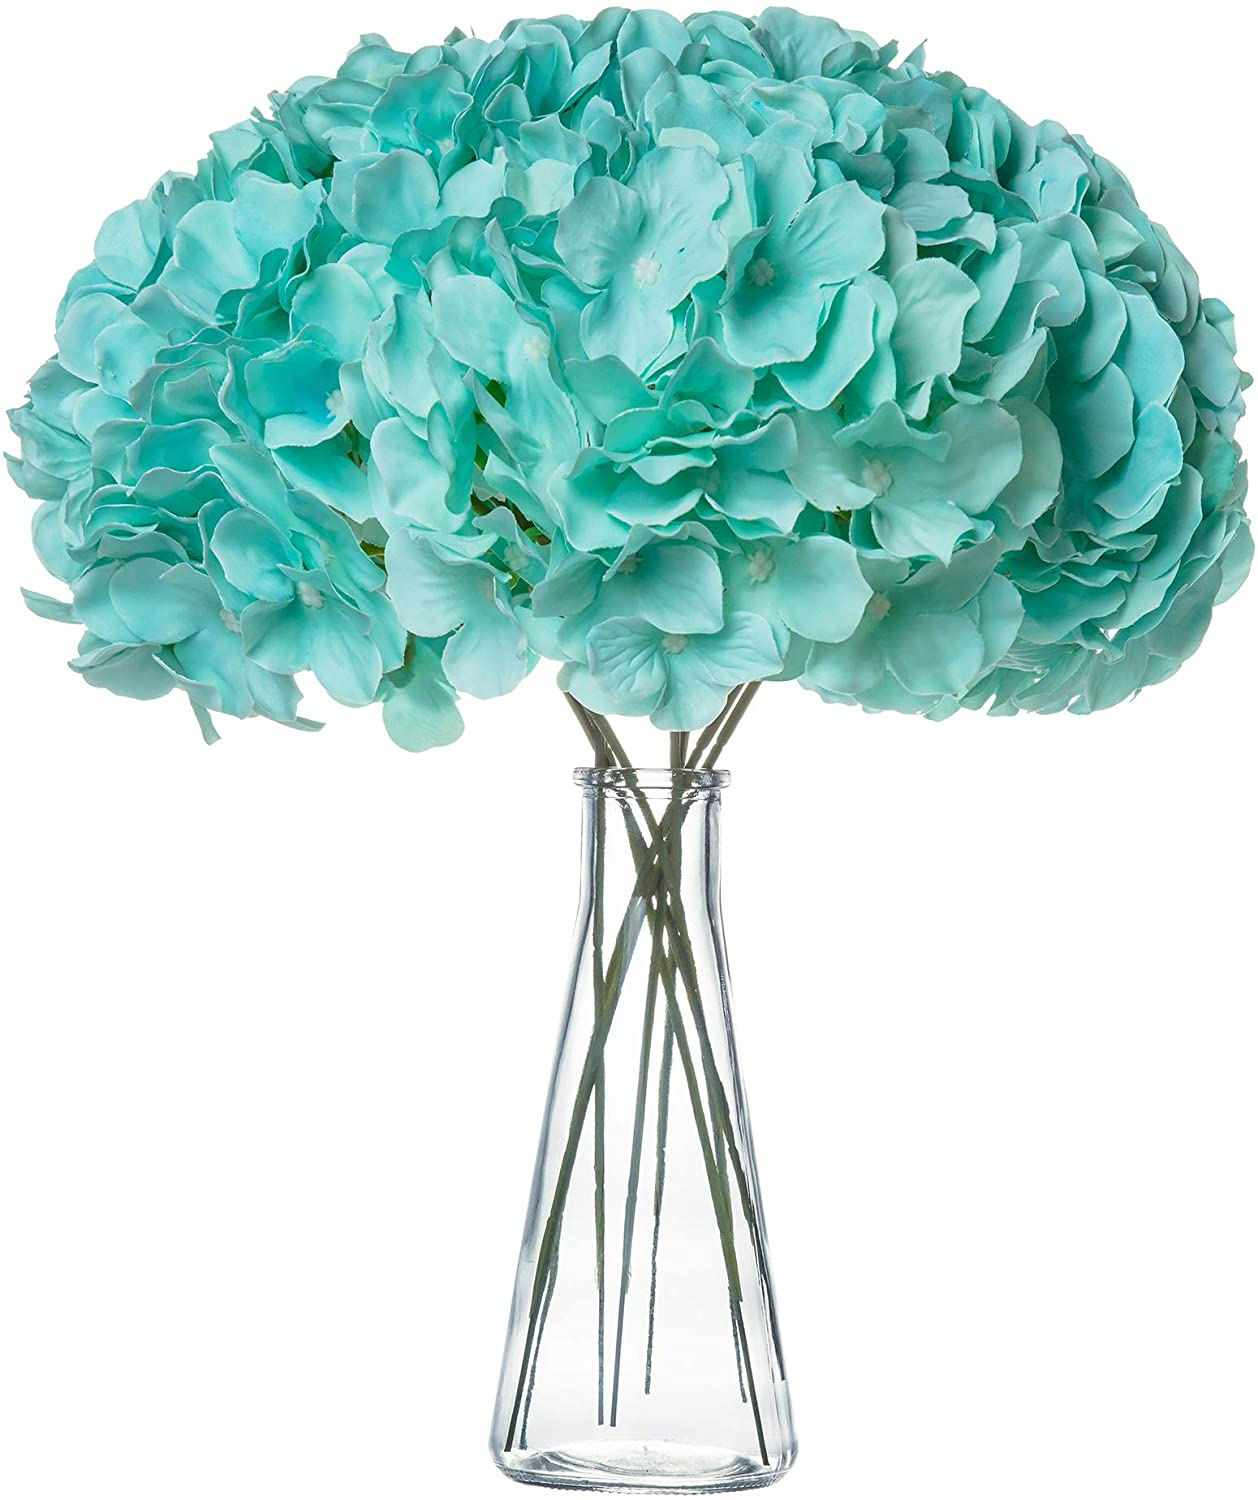 VARWANEO Hydrangea Silk Fake Flowers Heads with Stems, Pack of 12 Full Artificial Flowers for Decoration Wedding Rome Party Shop Baby Shower, Room Decor for Bedroom Aesthetic(Tiffany Blue)